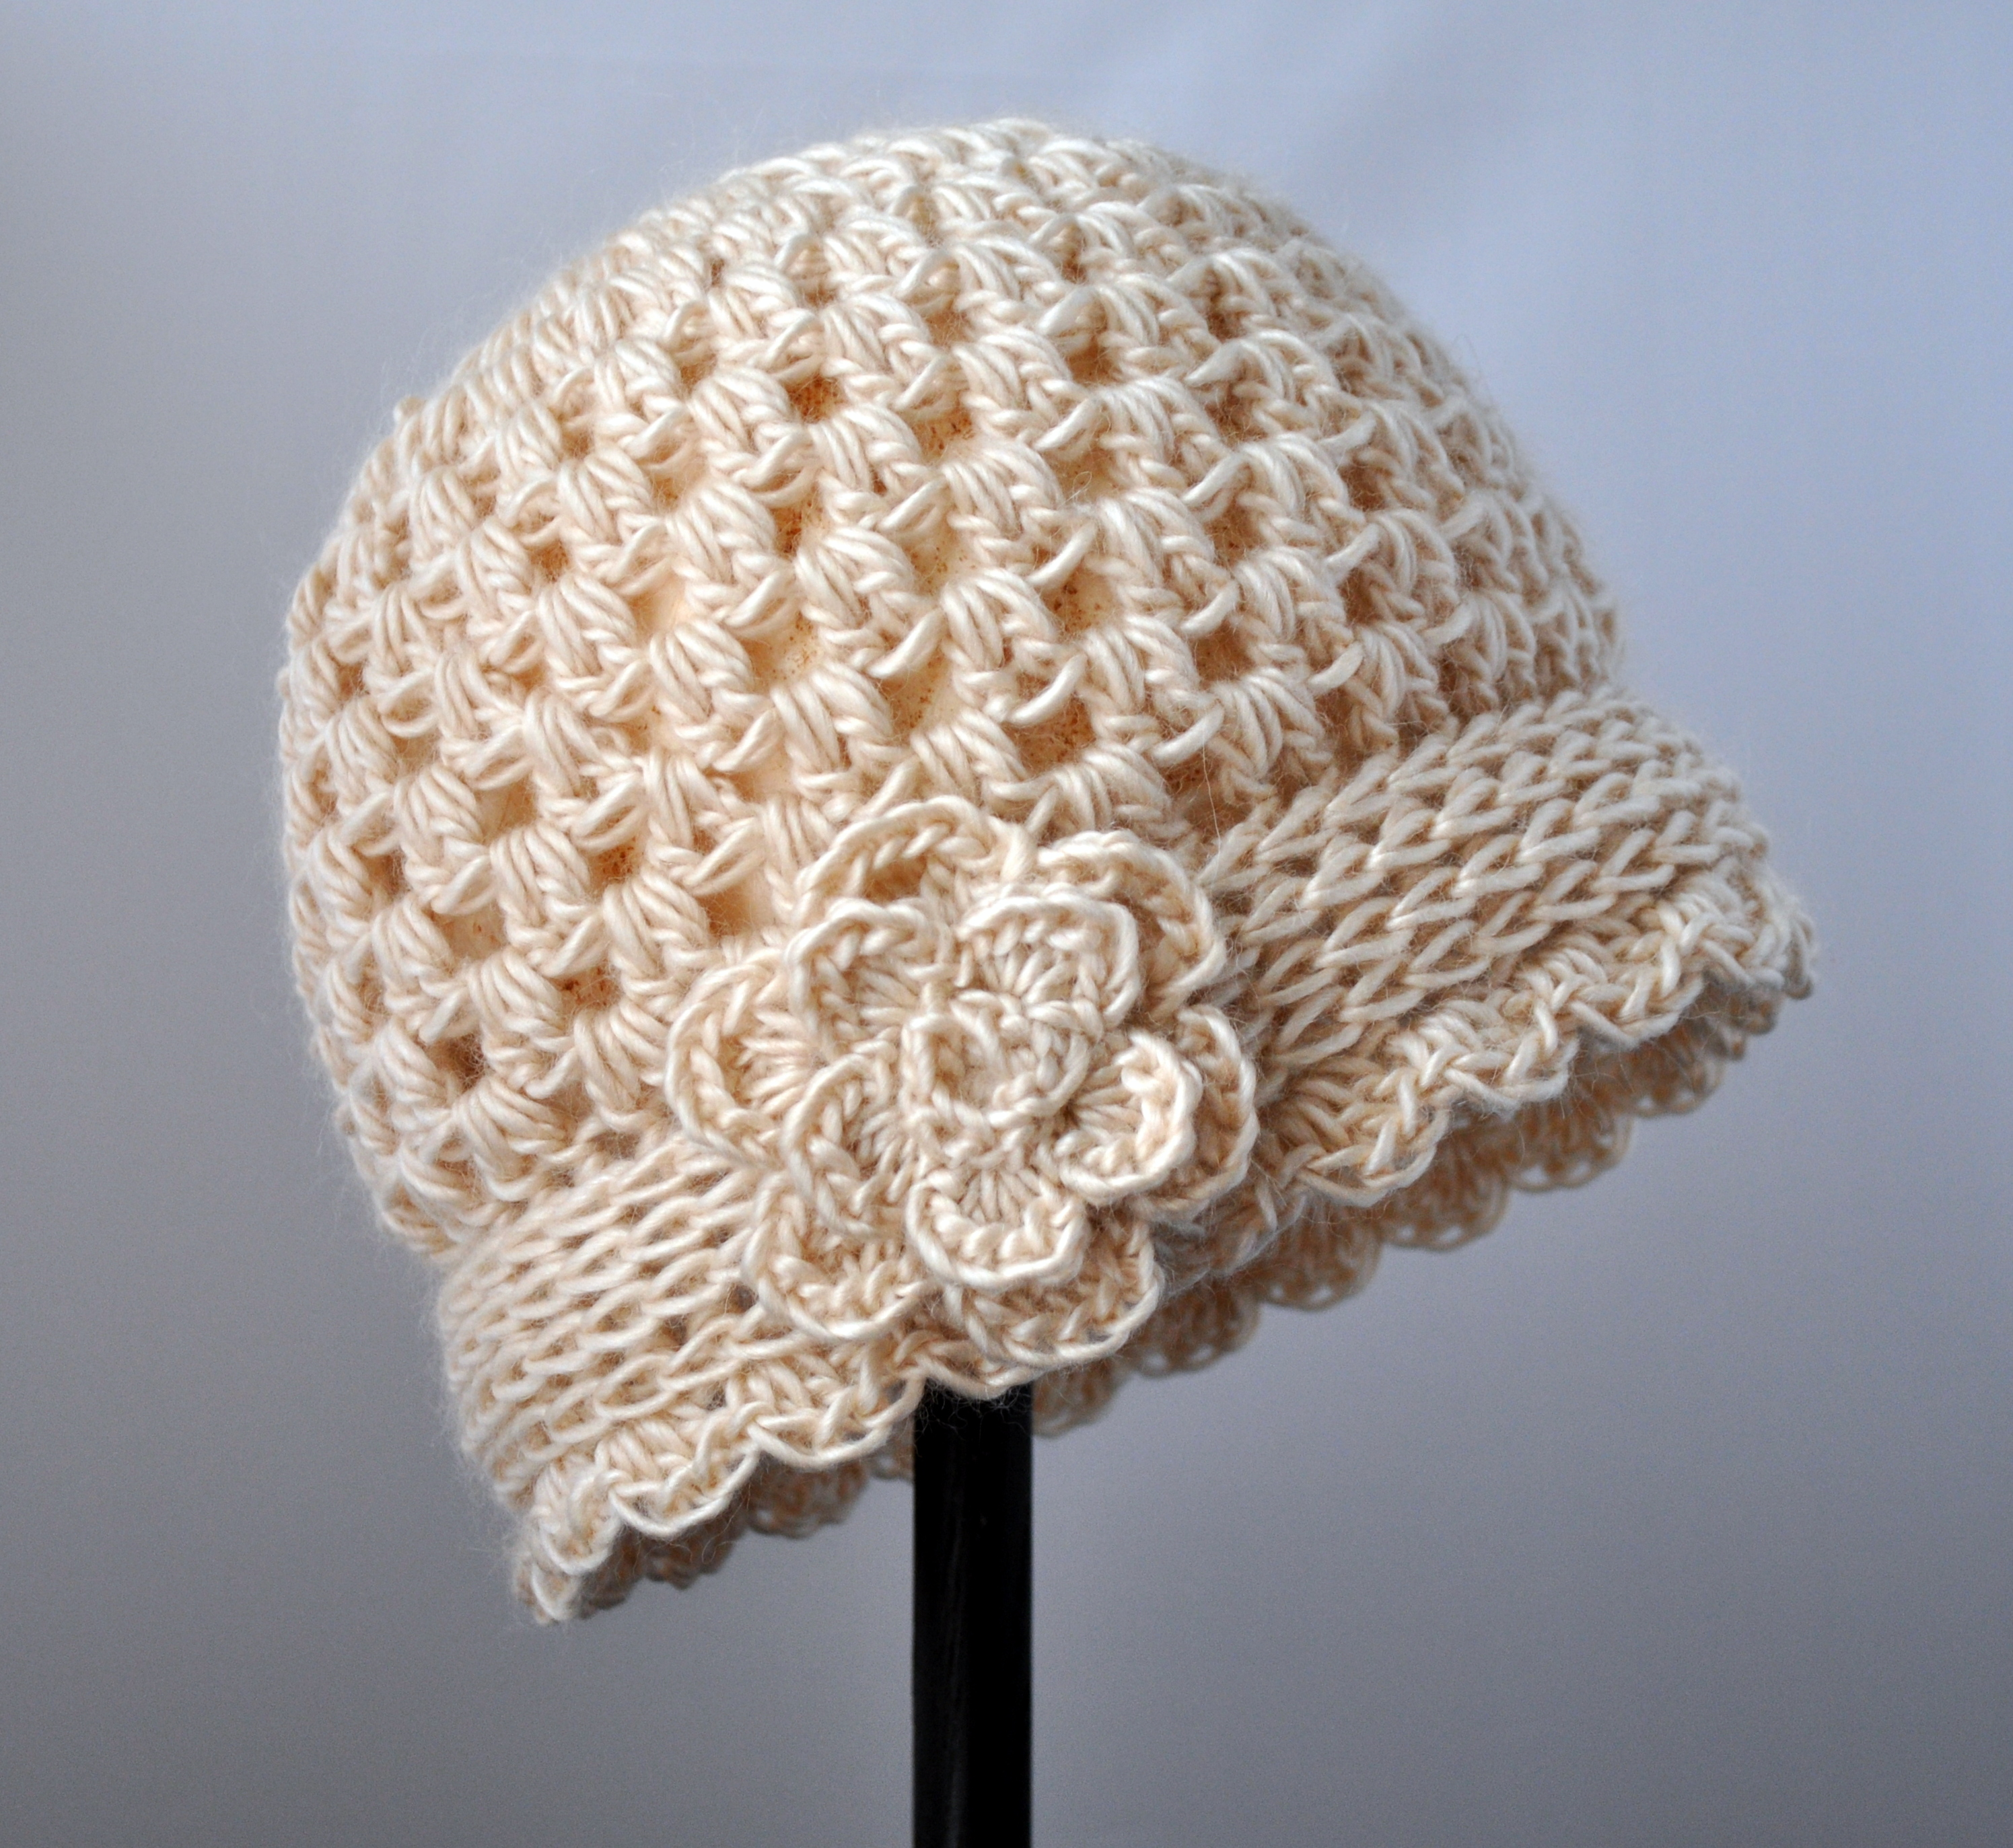 Crochet : Crochet Vintage Flowered Cloche Pattern Classy Crochet